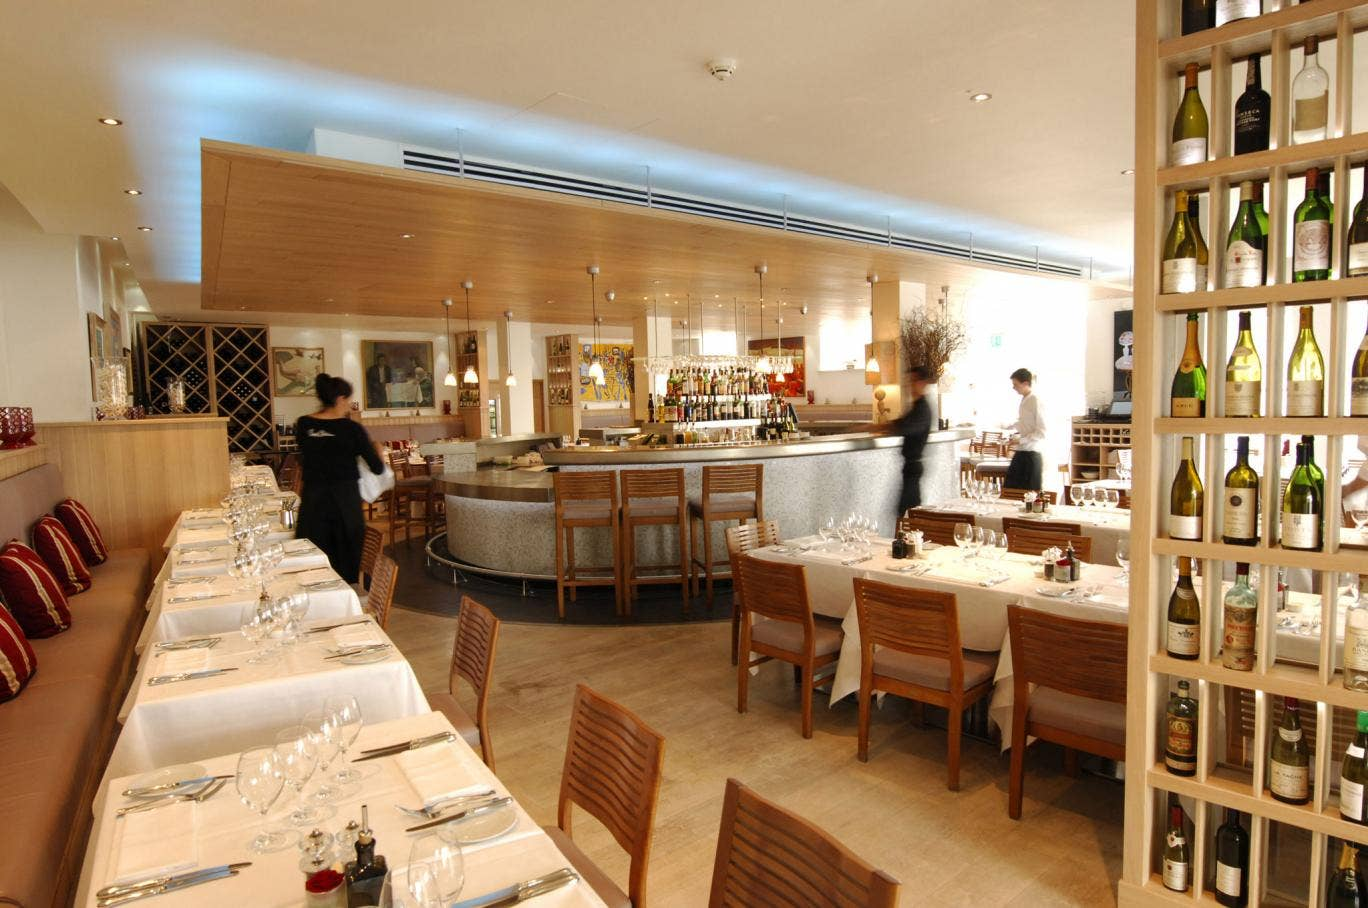 The Seafood Restaurant is the most celebrated of Rick Stein's establishments